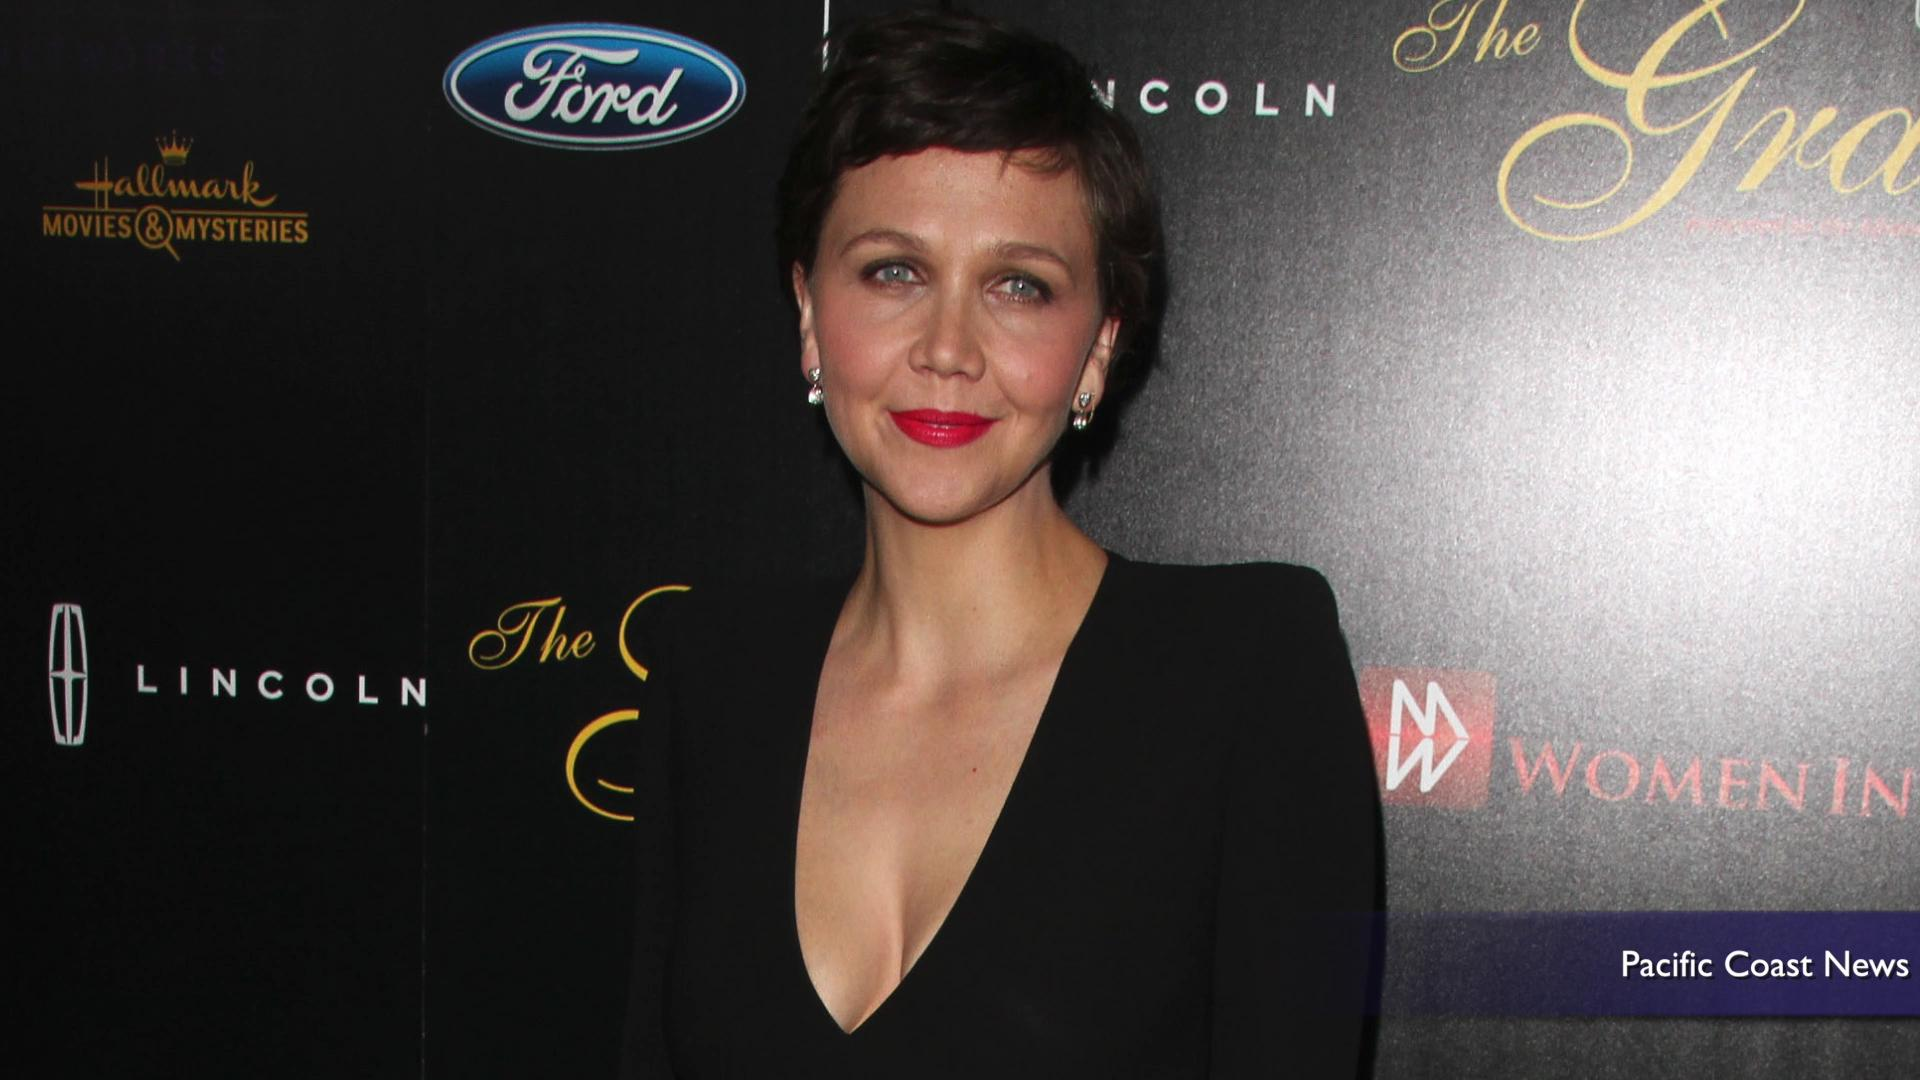 37-year-old Maggie Gyllenhaal 'too old' to play 55-year-old's love interest